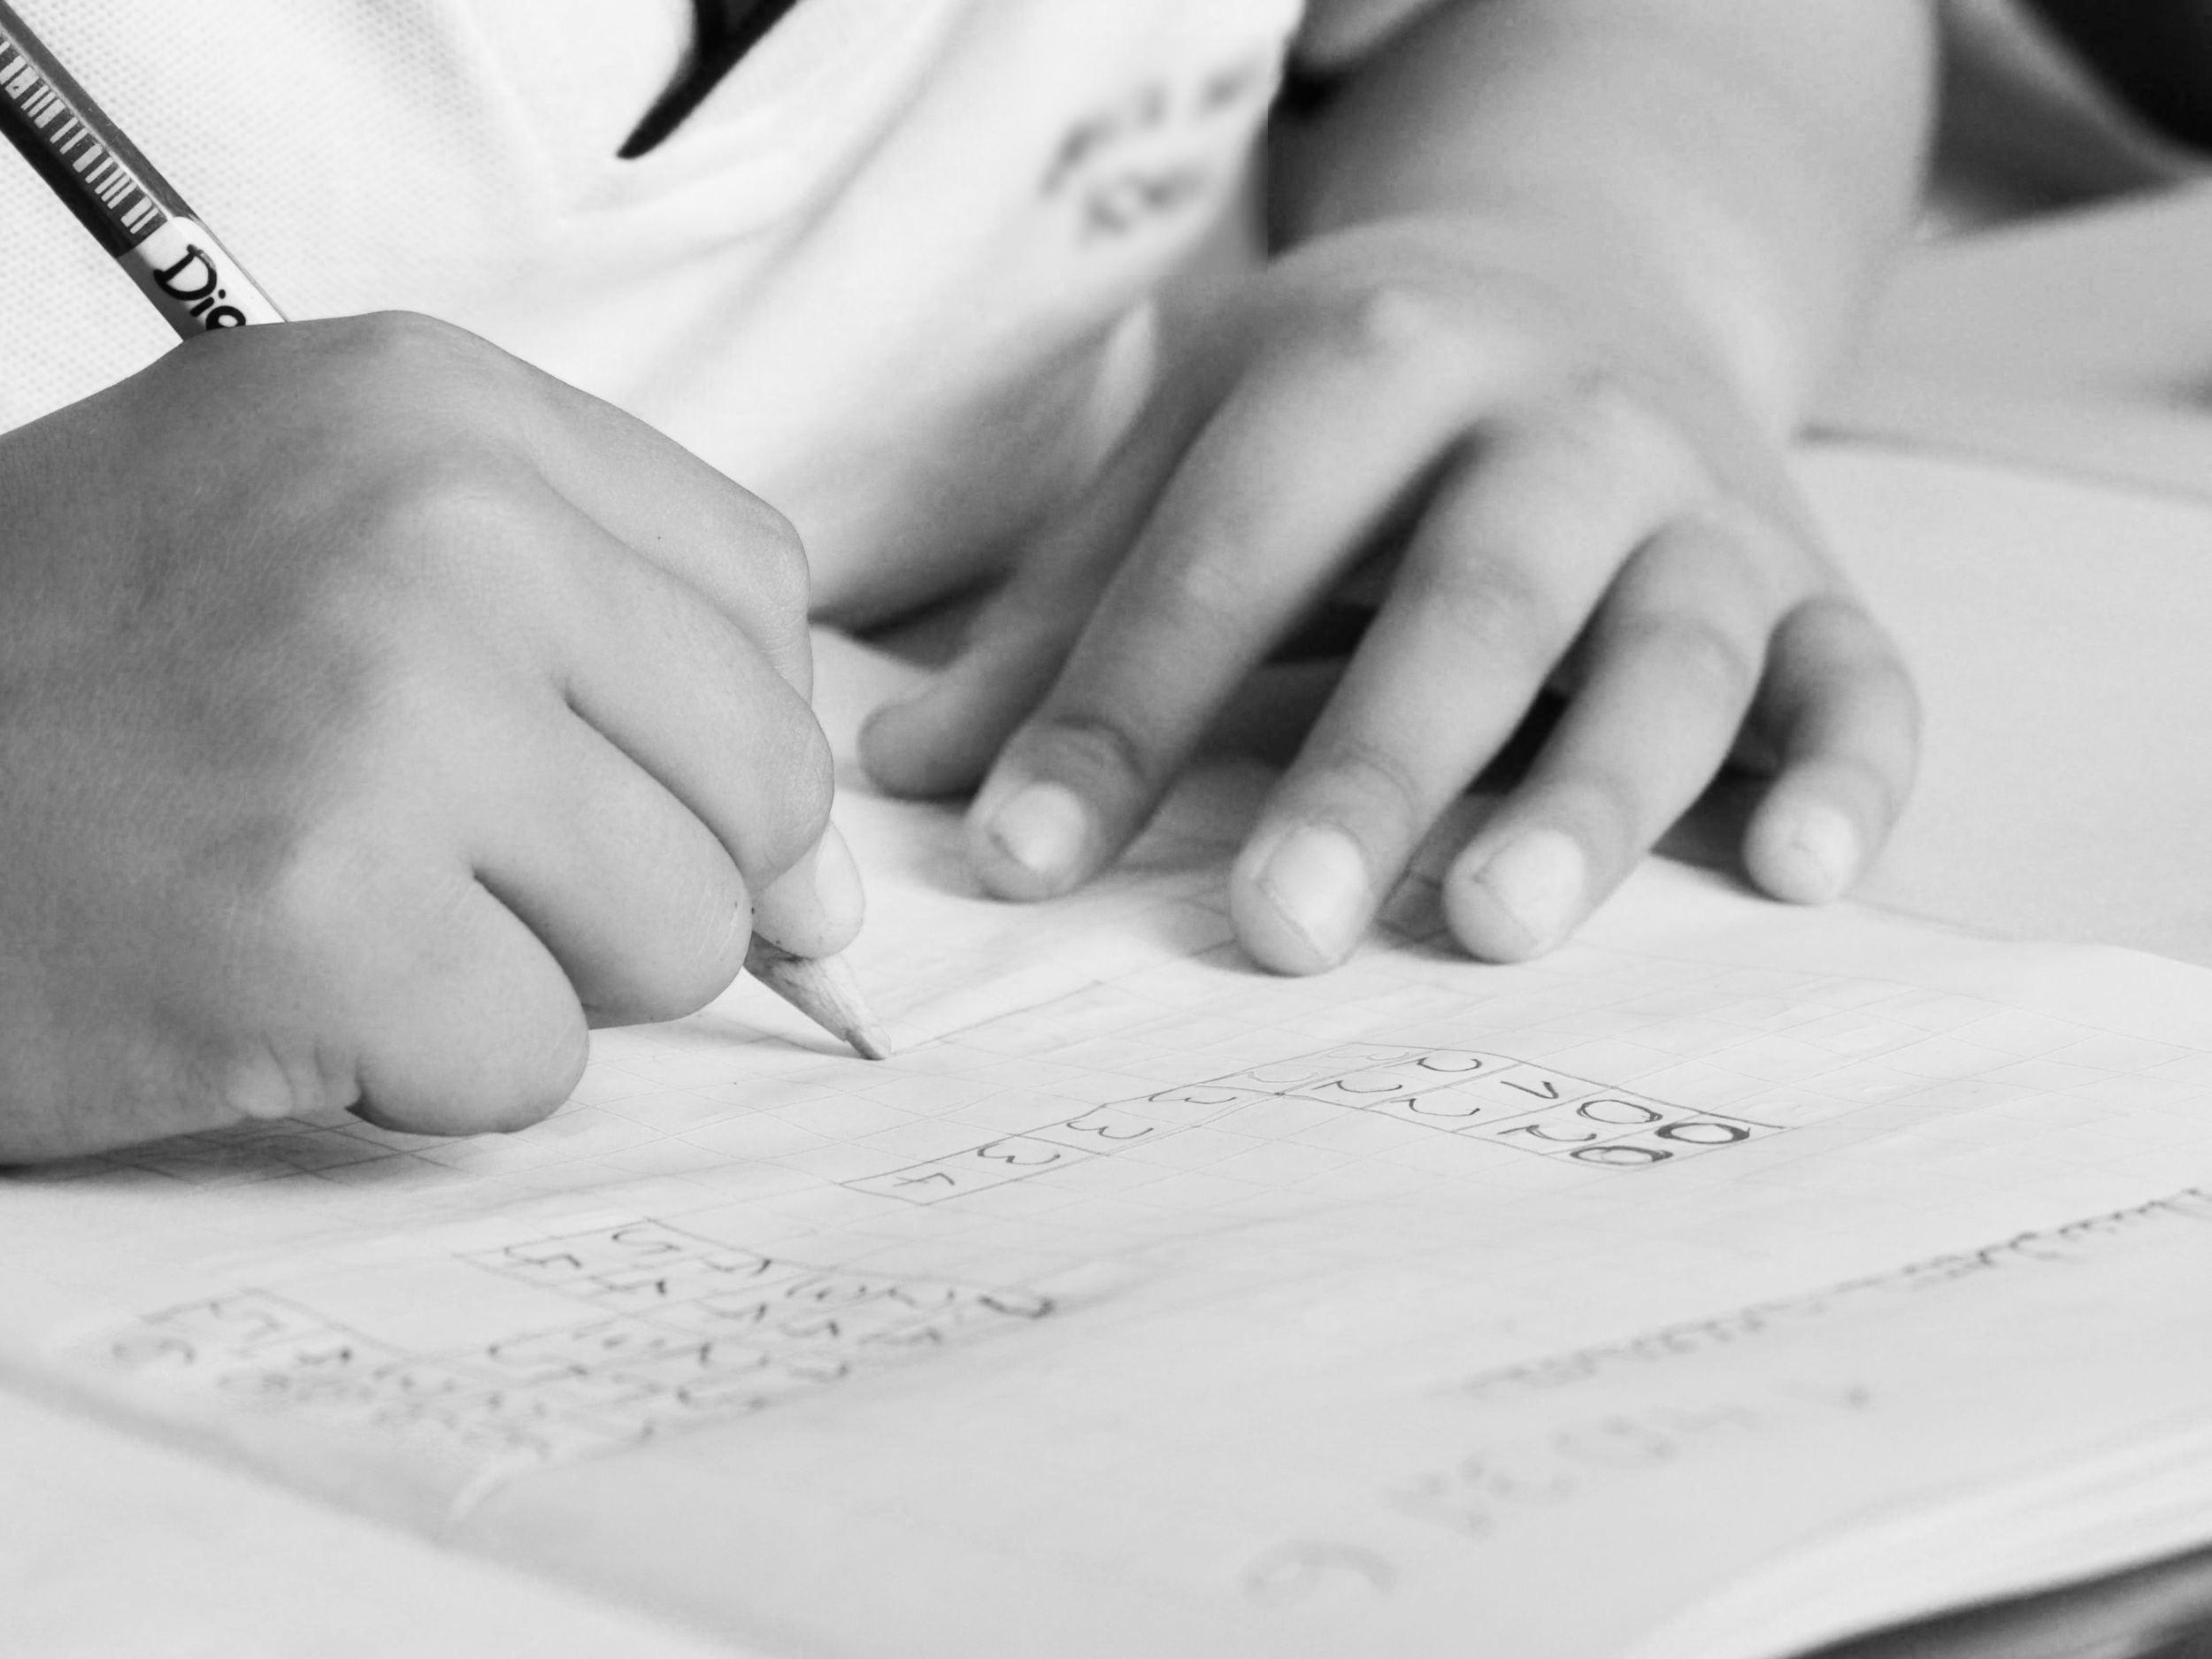 Helping Children with Special Needs Go Back to School - Back-to-school time can be exceptionally difficult for the 20 percent of children who suffer from a mental health or learning disorder.